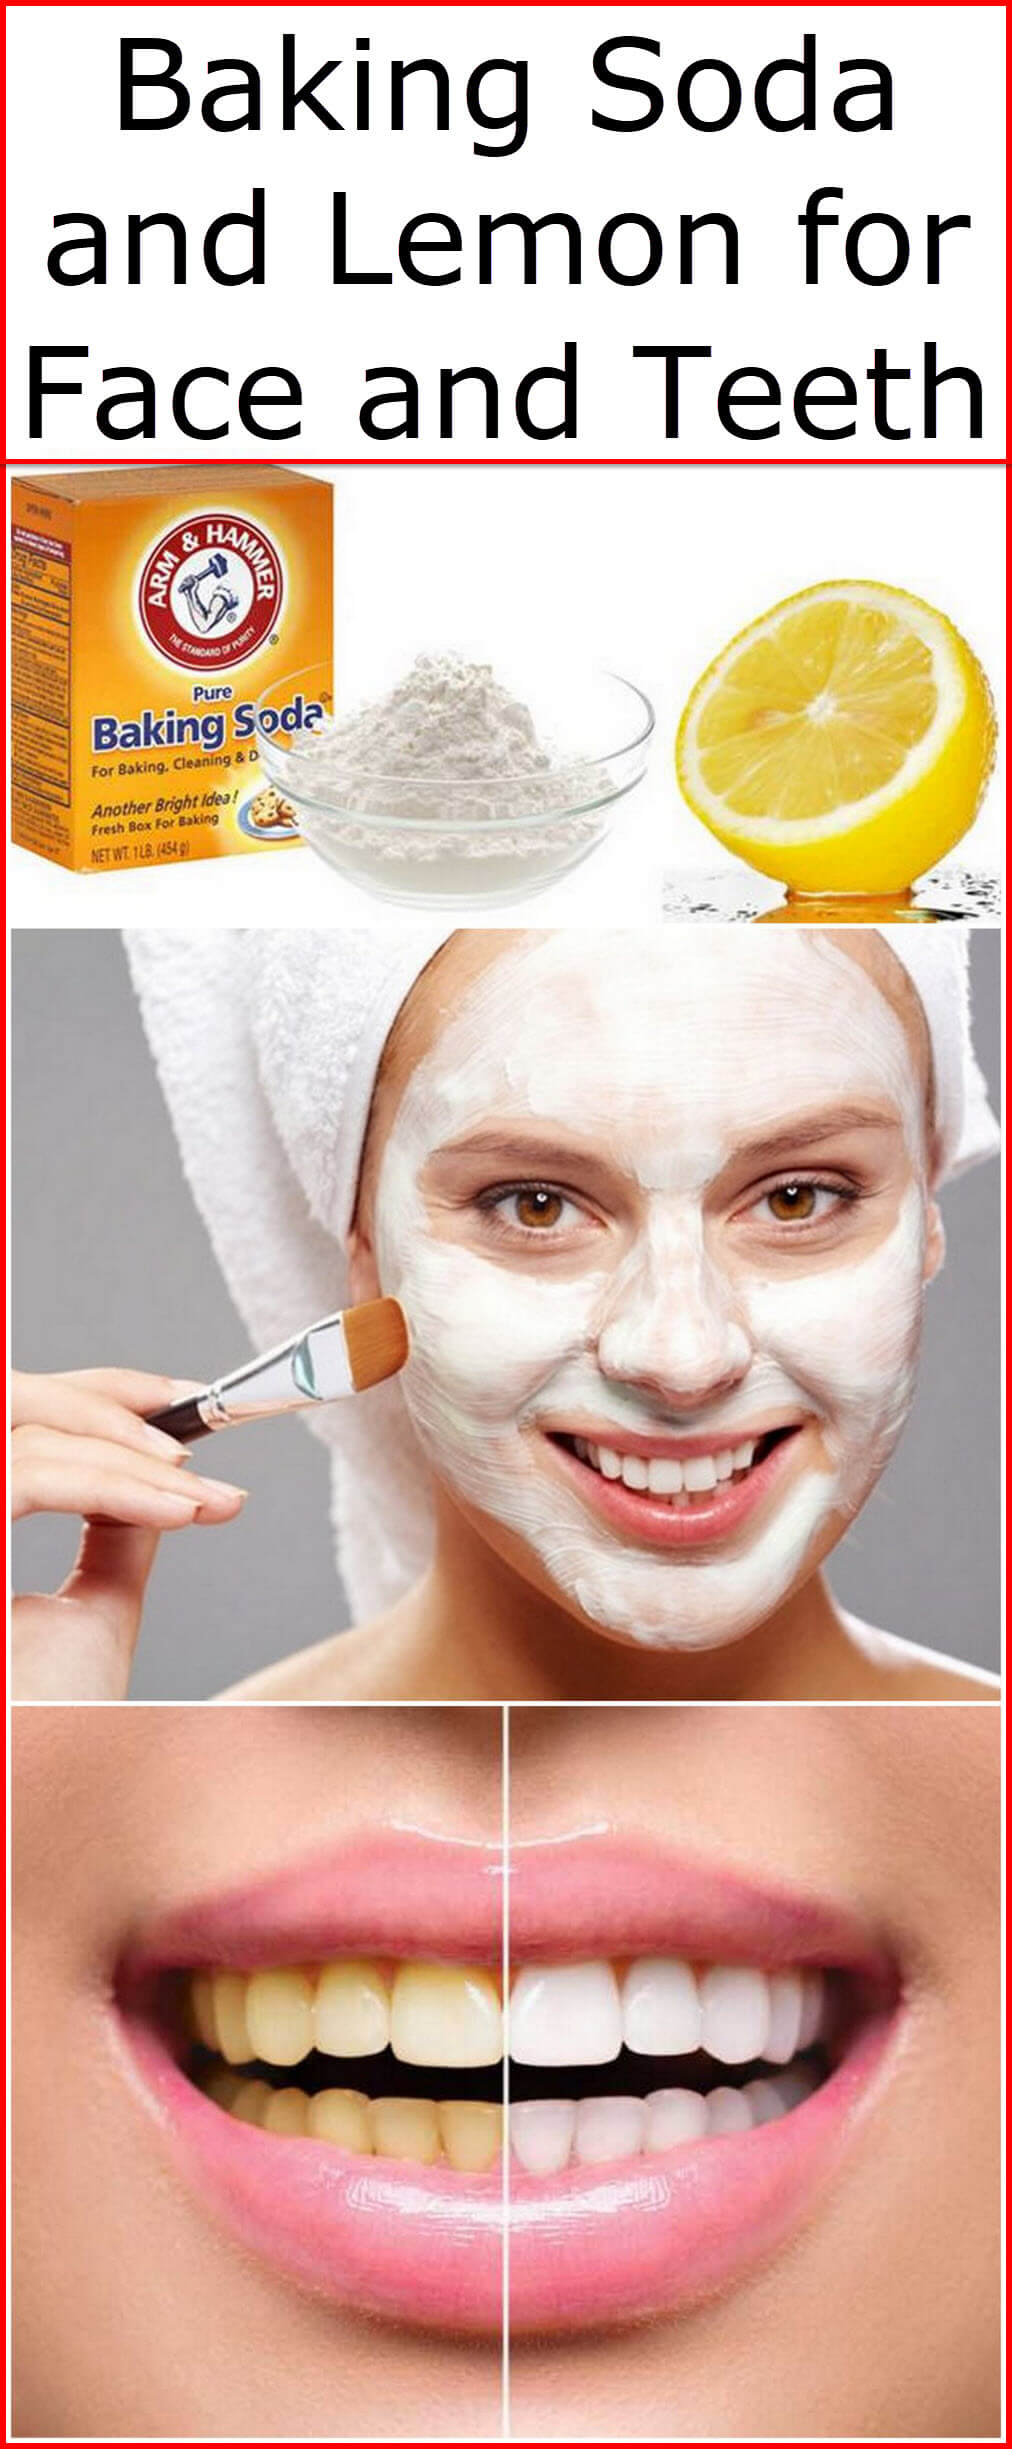 Baking Soda And Lemon For Face And Teeth Baking Soda Uses And Diy Home Remedies